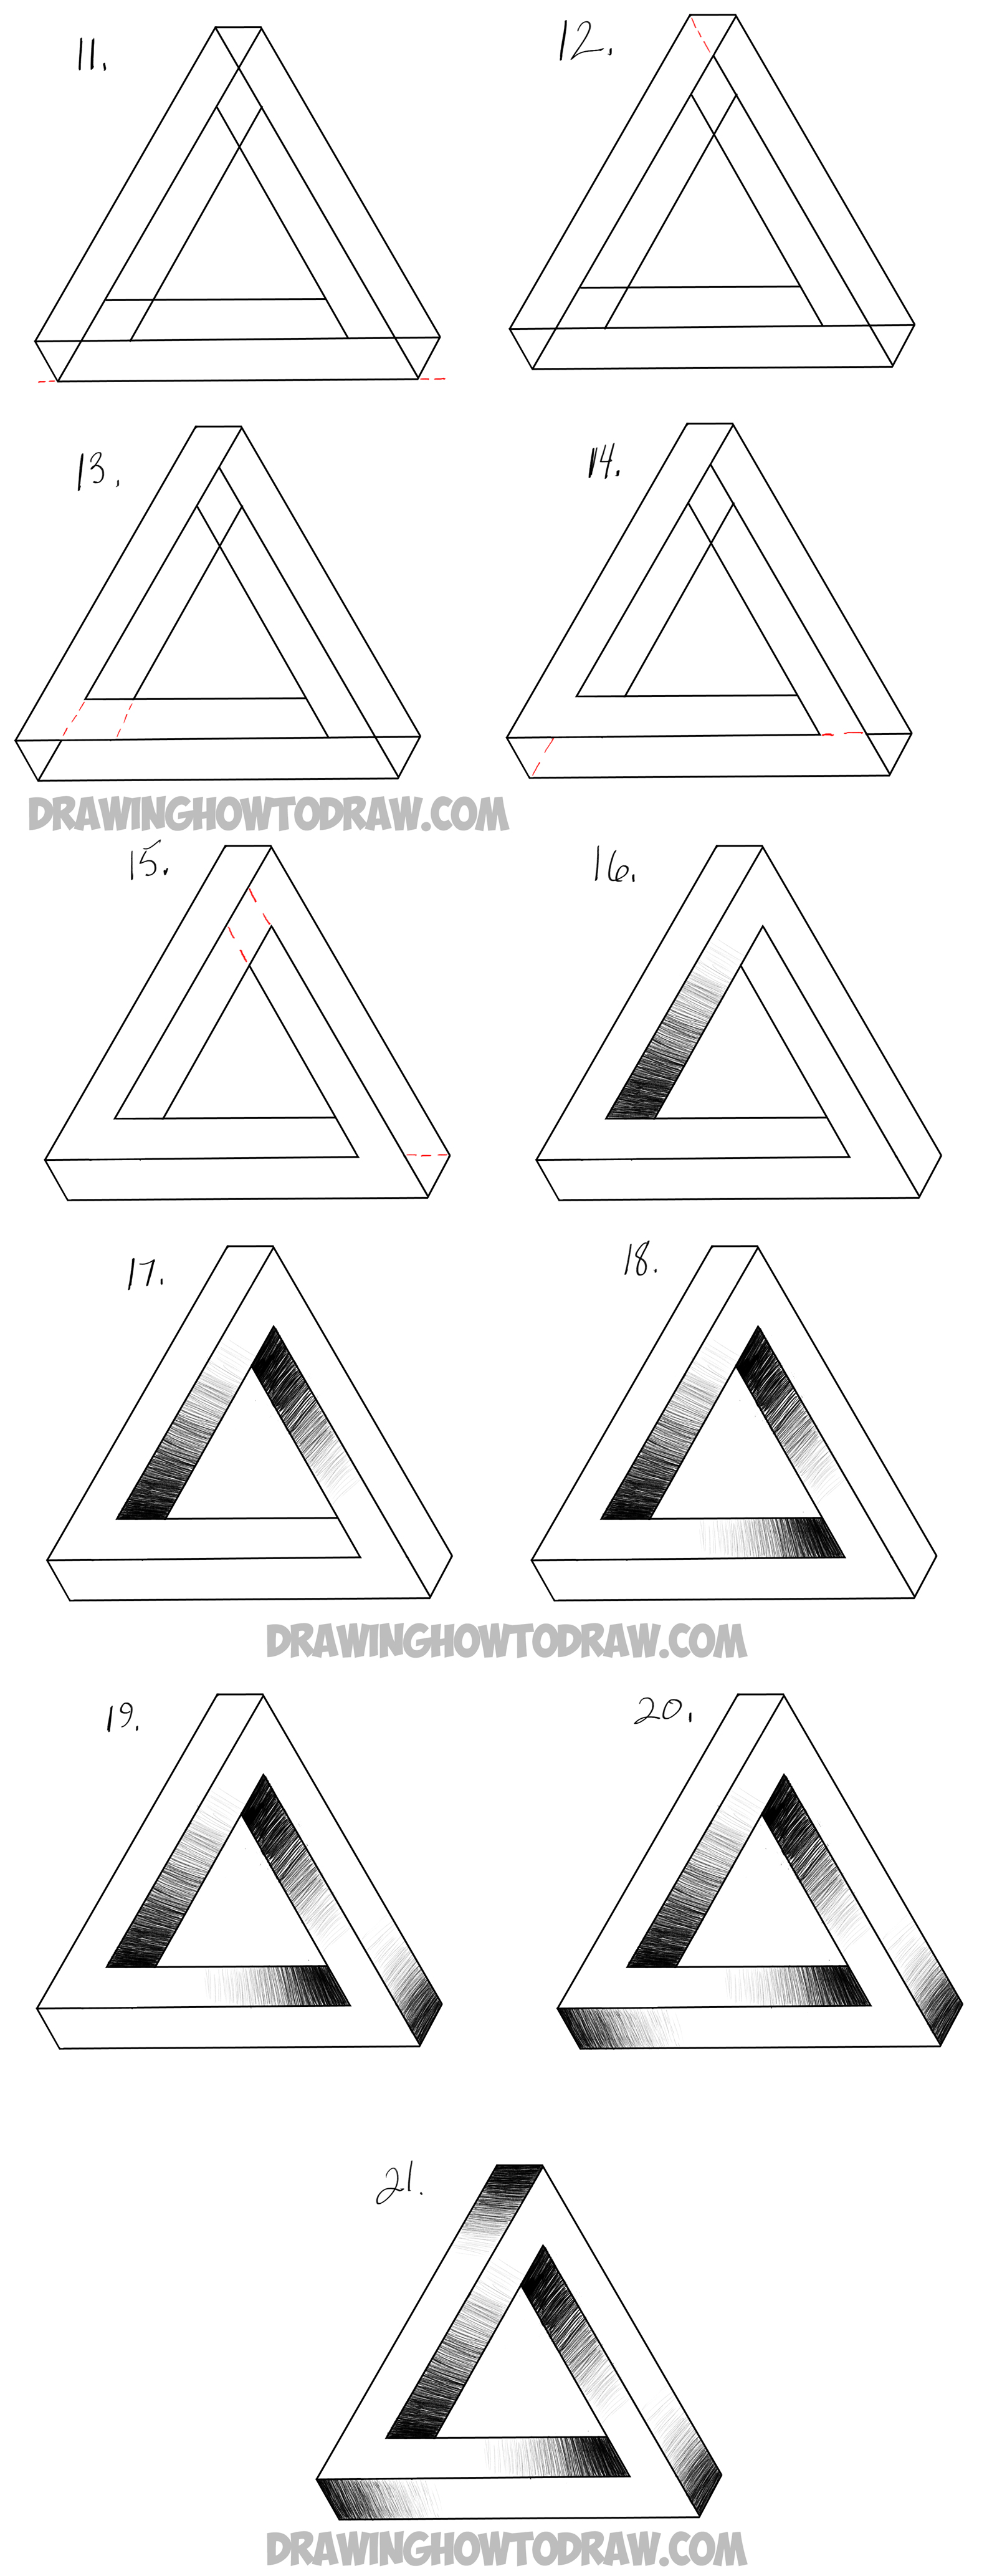 How To Draw An Impossible Triangle